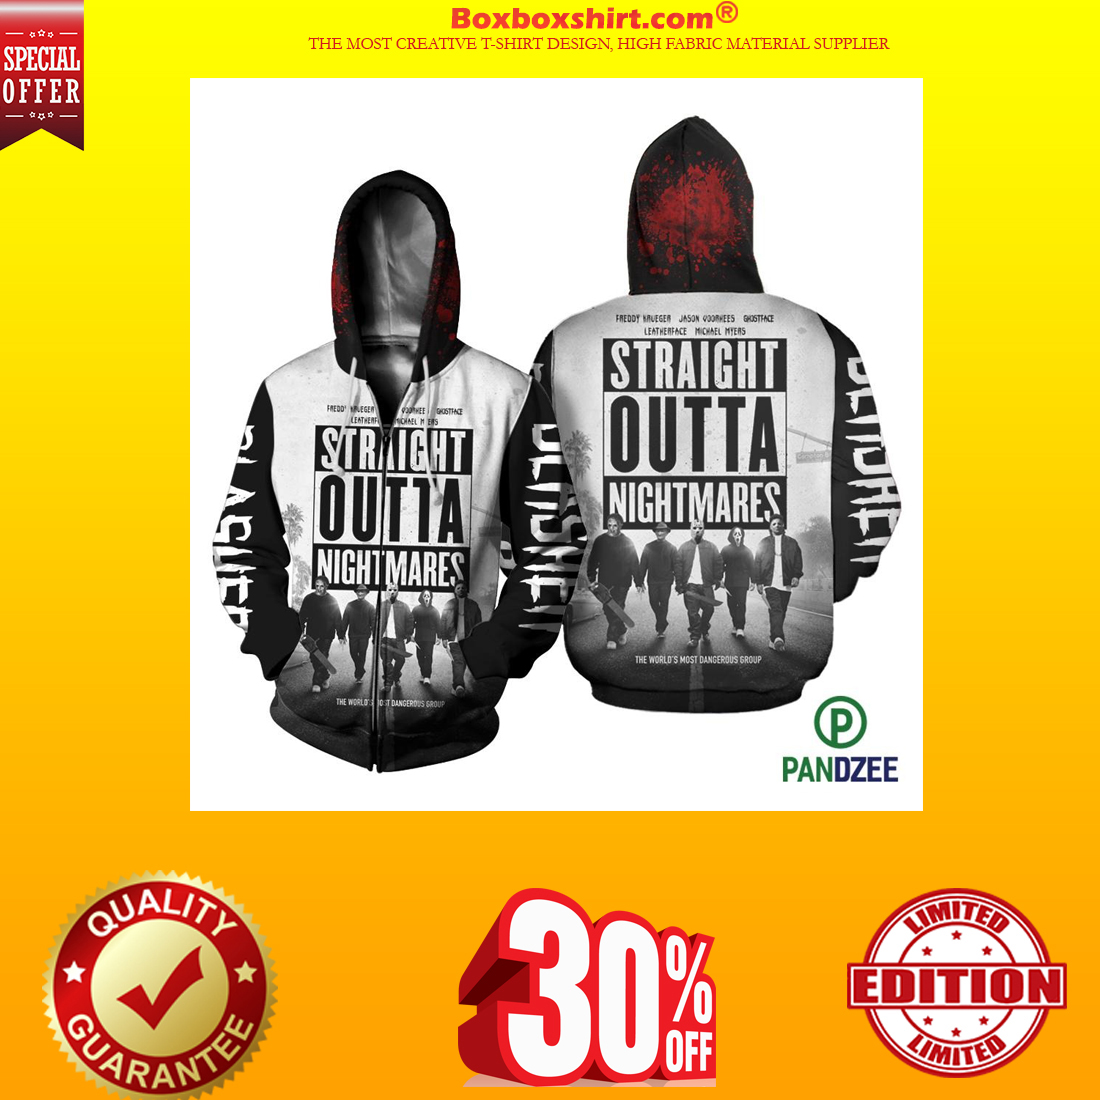 Straight outta nightmares 3d shirt and zipped hoodie